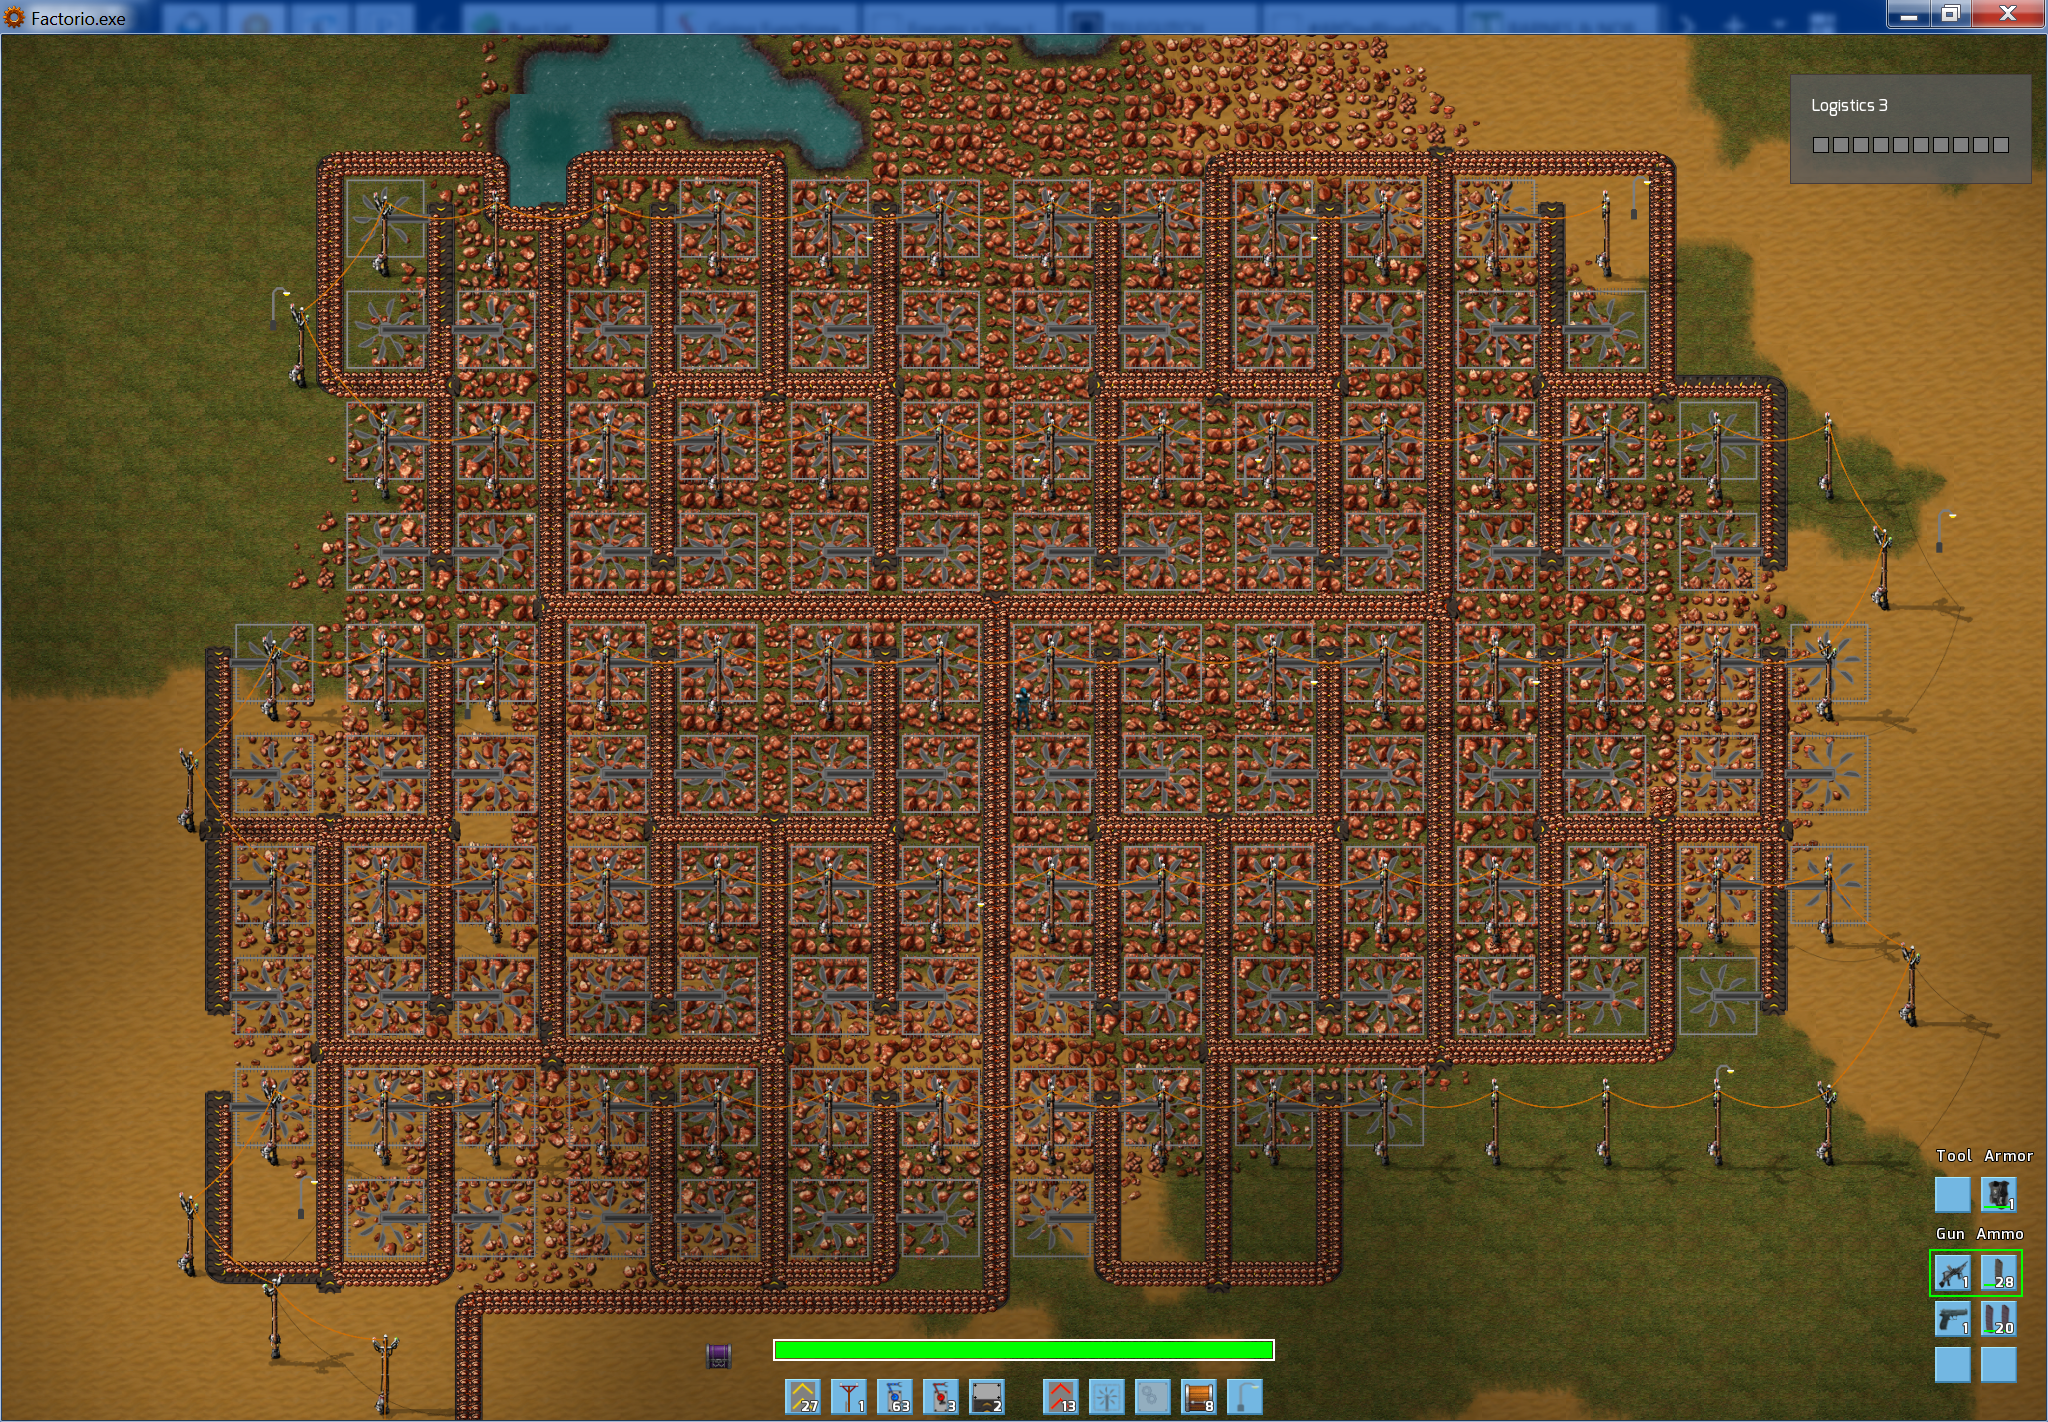 Factorio: The perfect game for a certain type of person